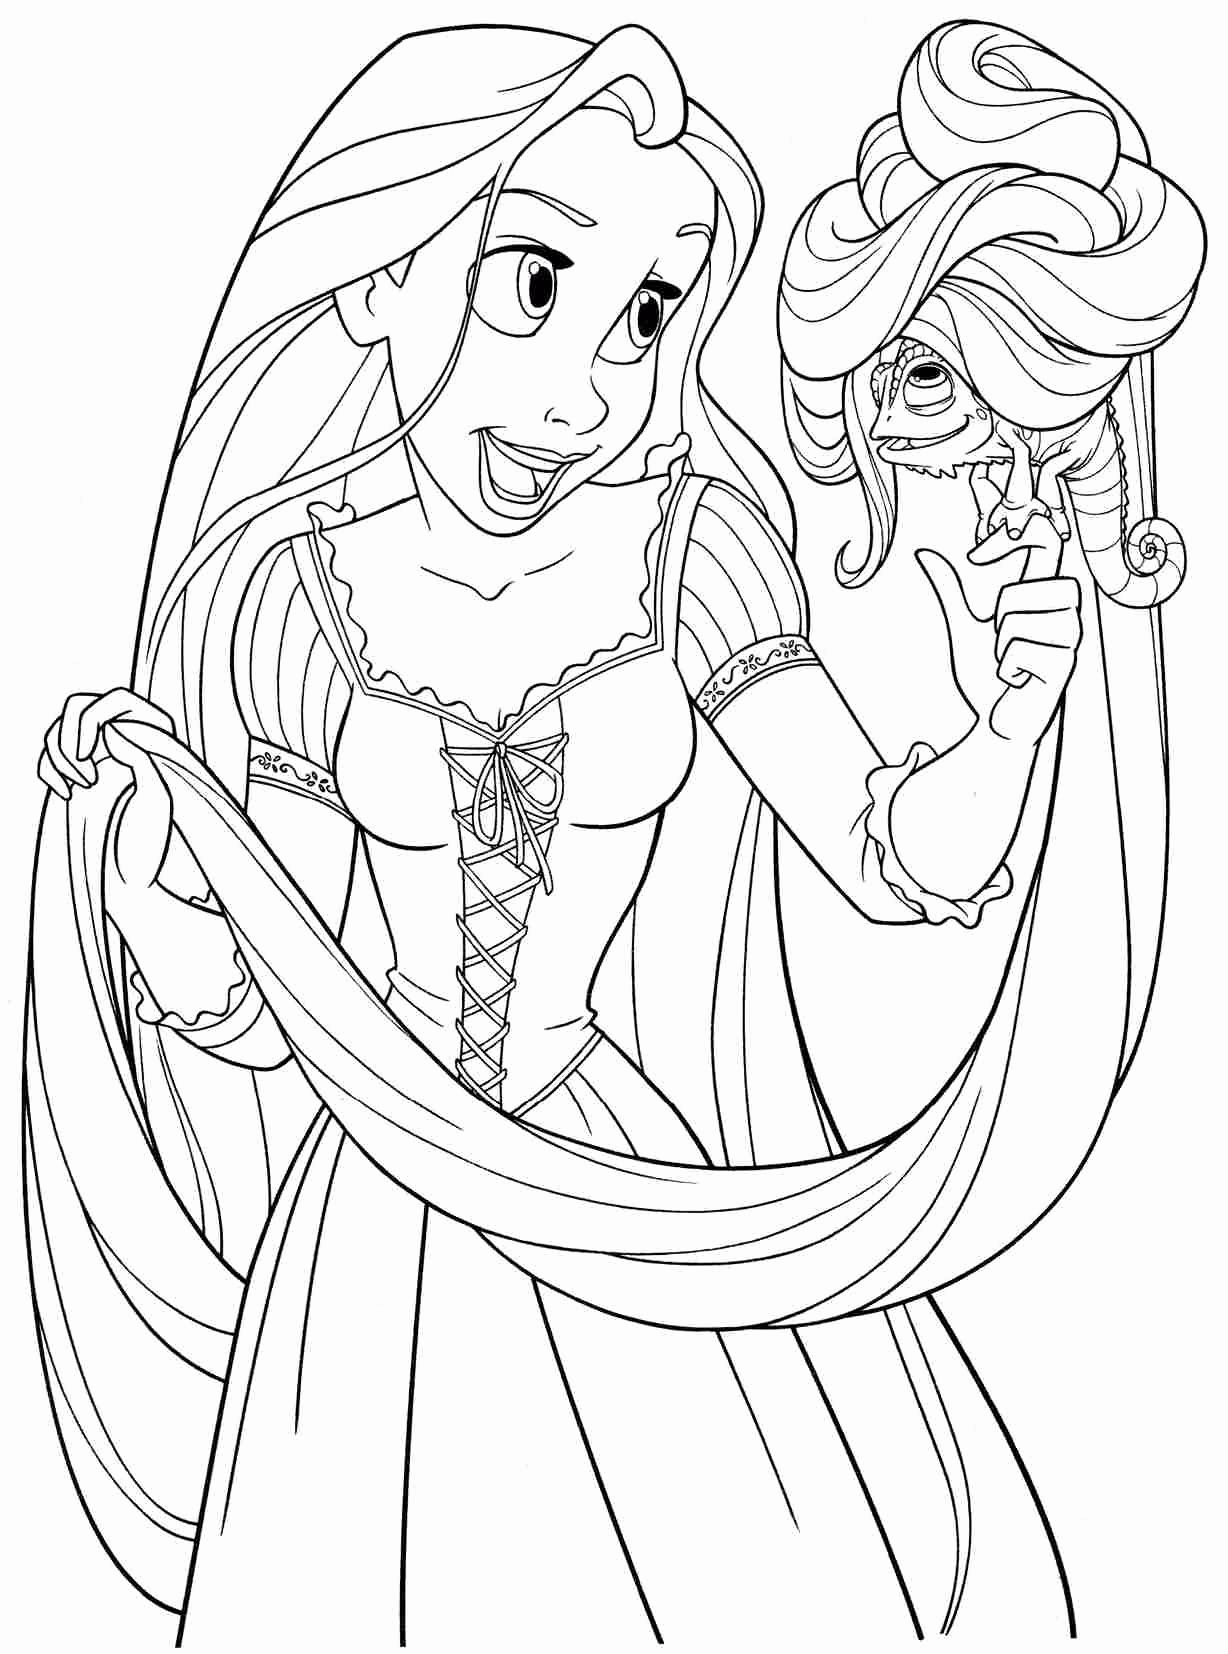 Disney Princess Coloring Pages Pdf Luxury Princess Coloring Pages Pdf Coloring Ho In 2020 Disney Princess Coloring Pages Rapunzel Coloring Pages Disney Princess Colors